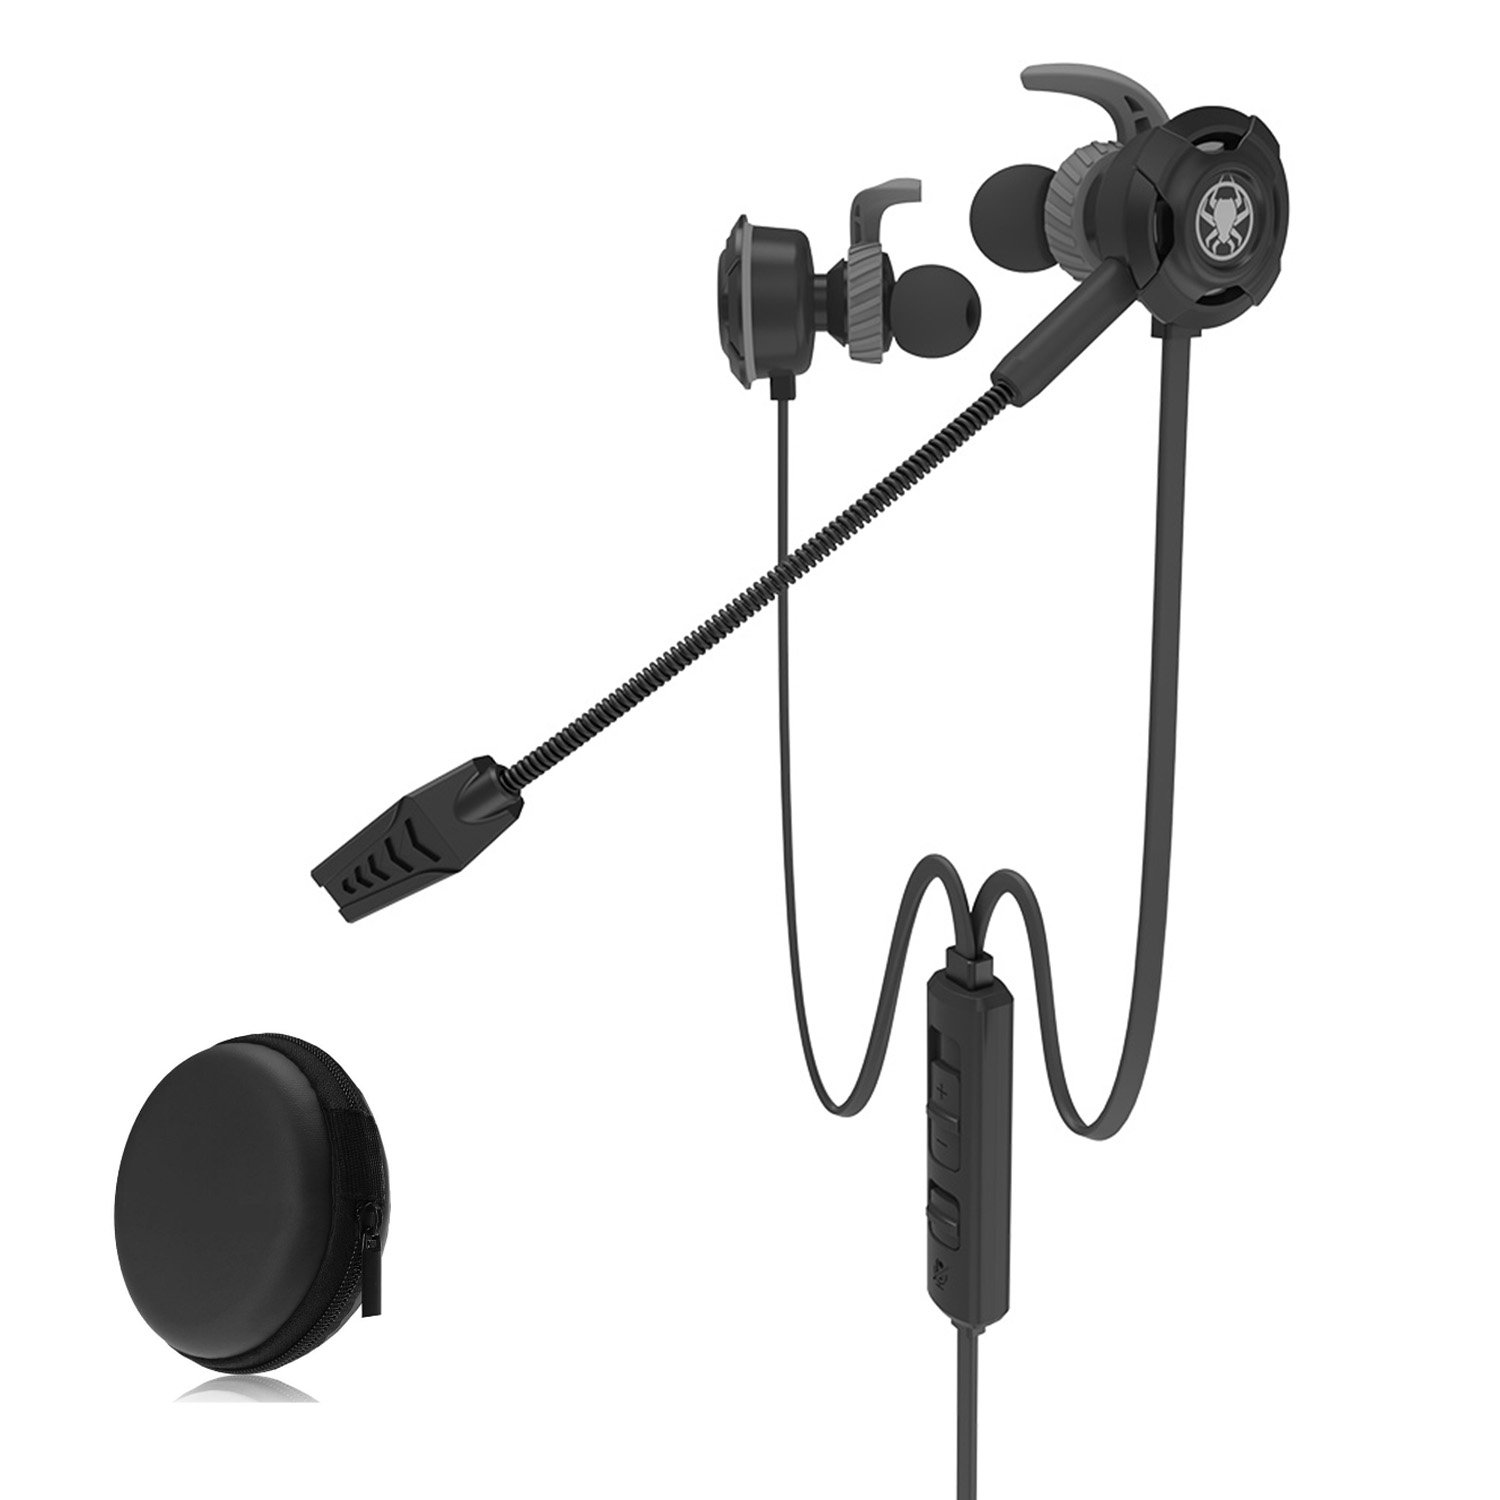 HD Gaming Headset with Mic 3.5mm in-ear Noise Cancelling Portable Mobile Game Earbuds for Iphone 6 / Samsung S8 Smartphones PC Tablet PS4 etc(G30-BK)